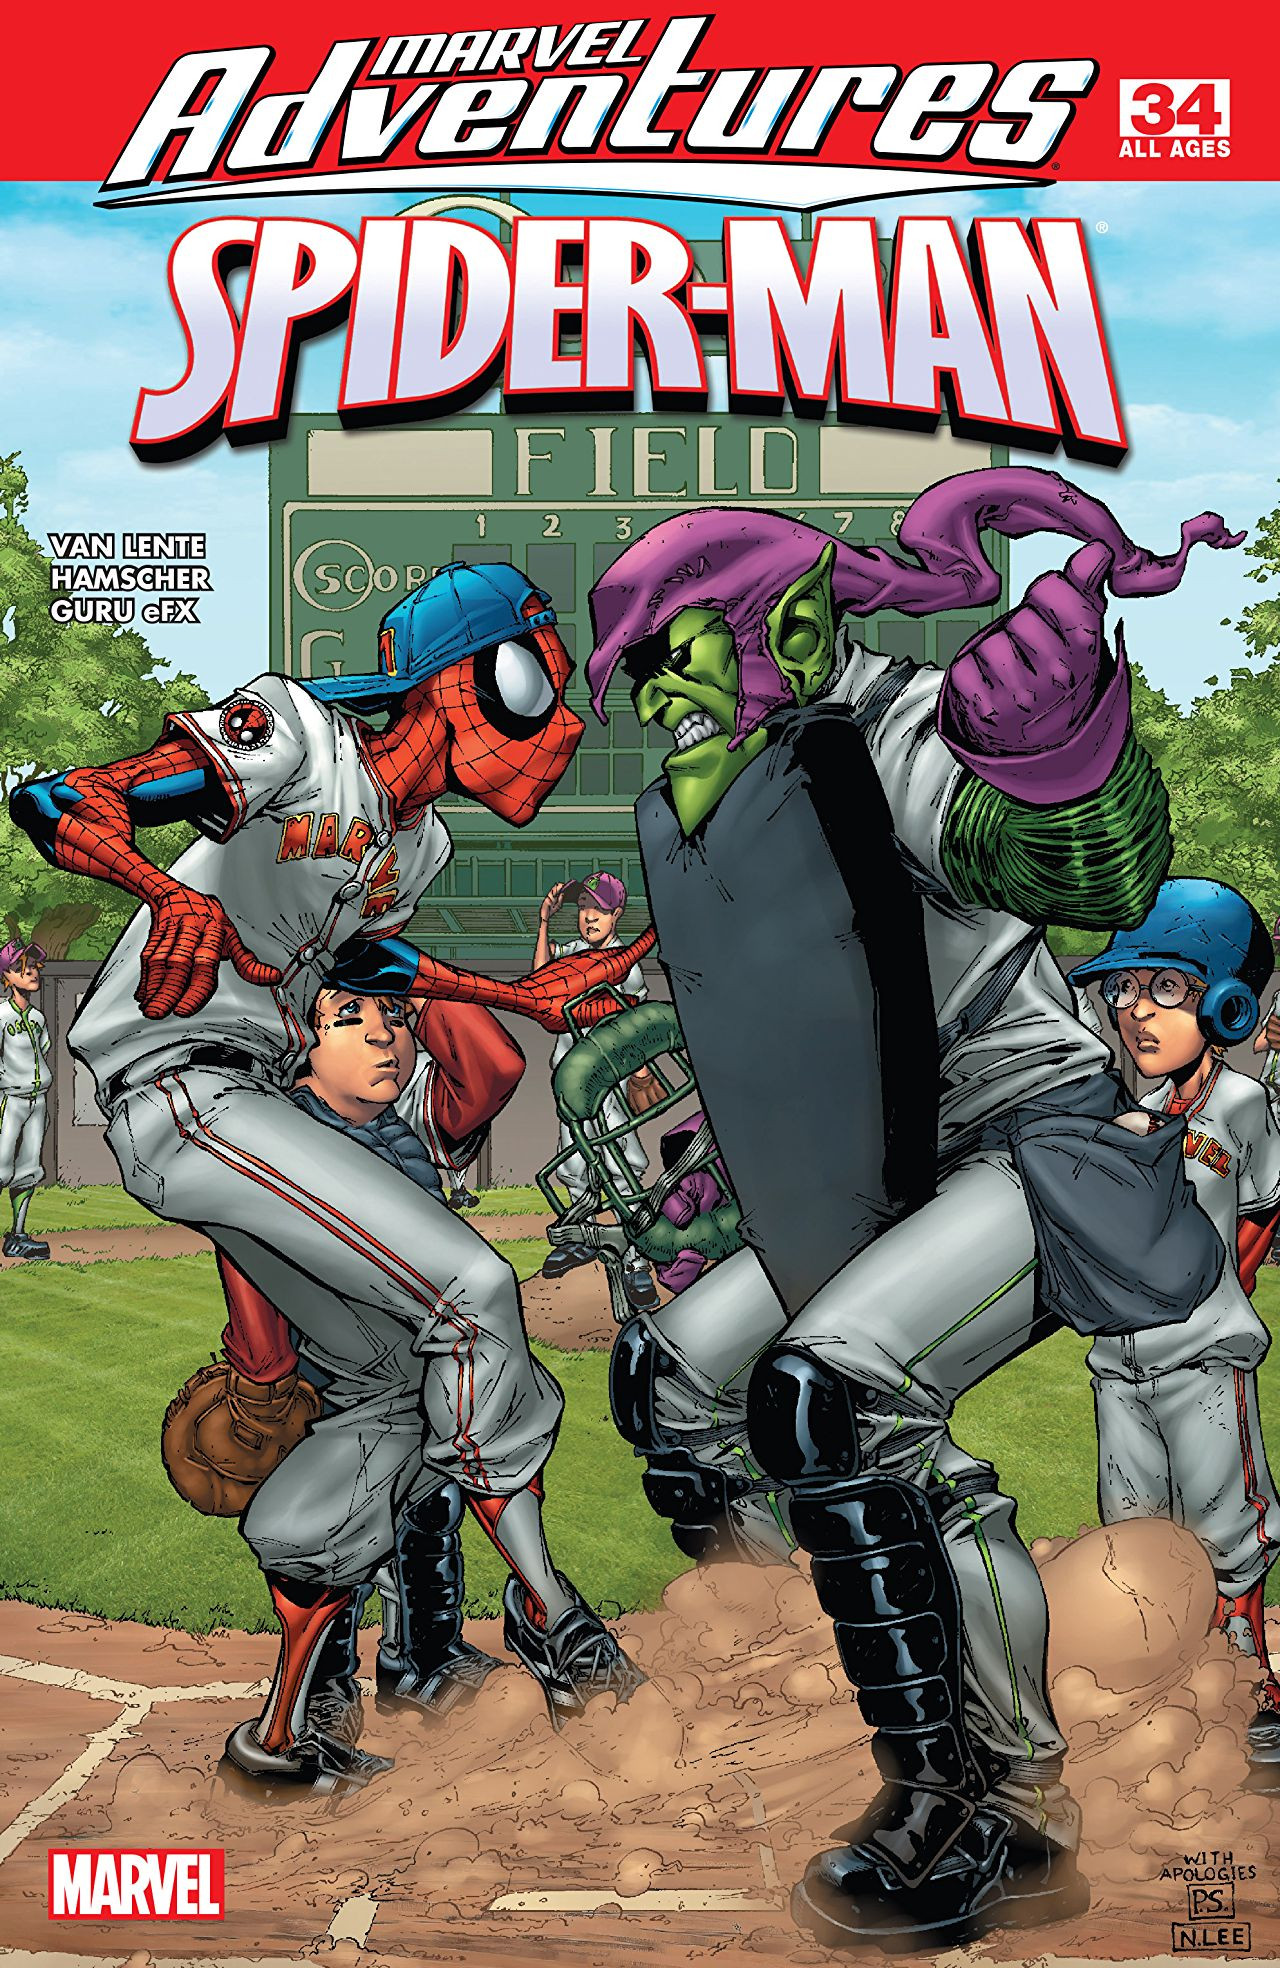 Marvel Adventures: Spider-Man Vol 1 34